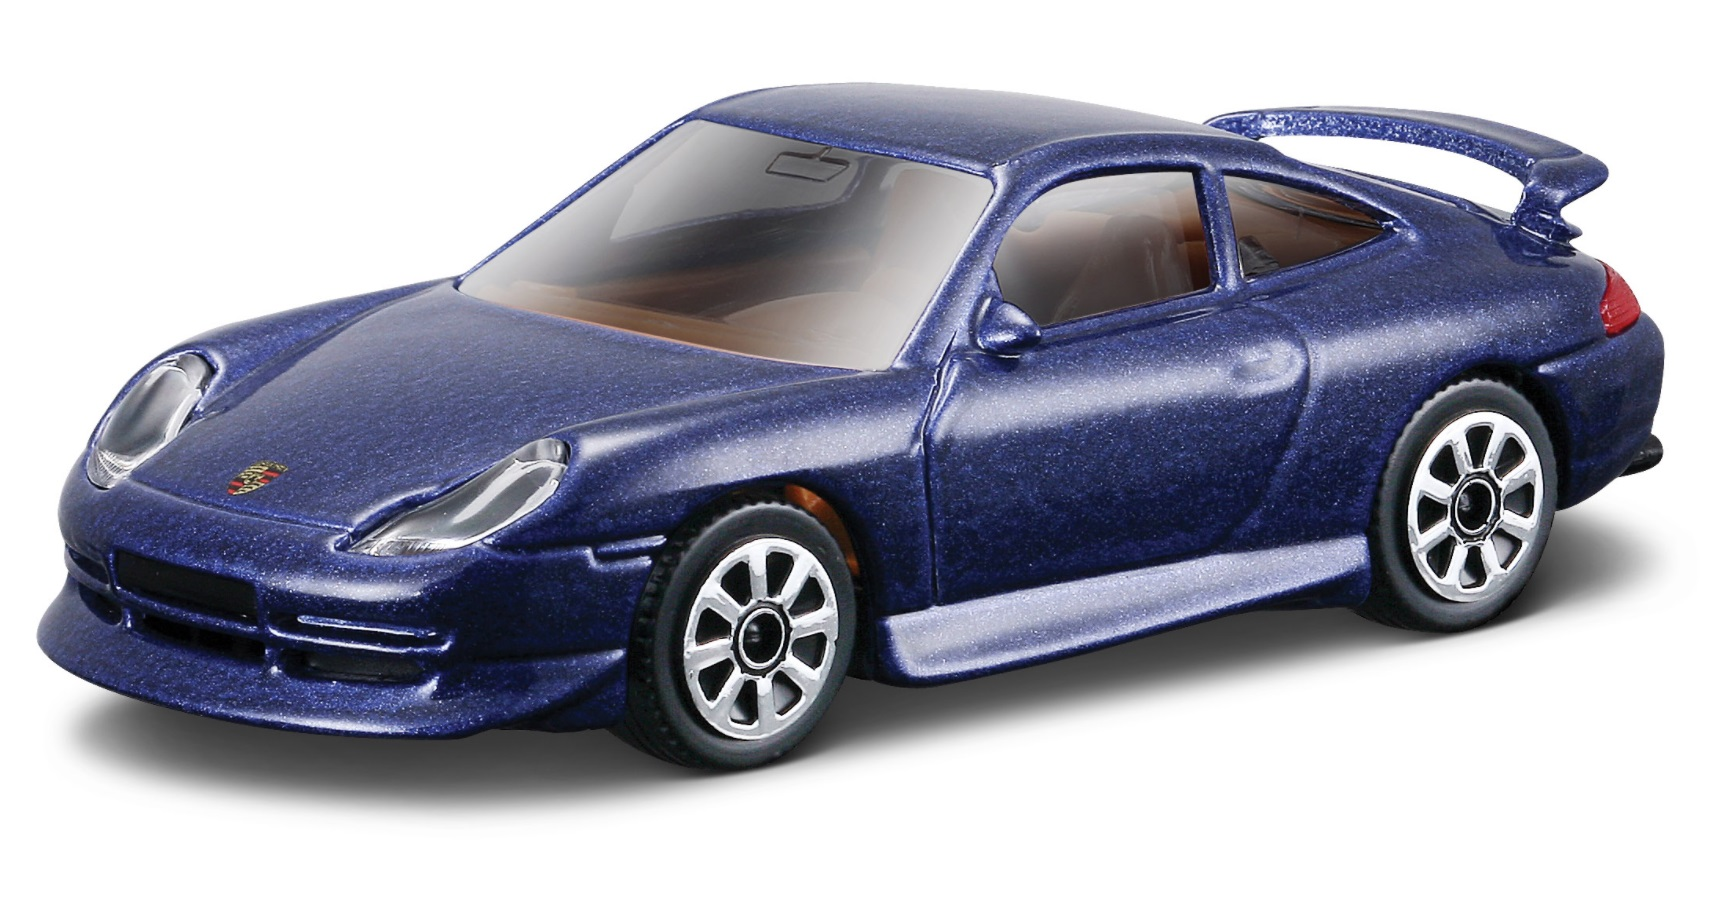 Porsche GT3 2011 Scale 1:43 (Purple/Roxo)